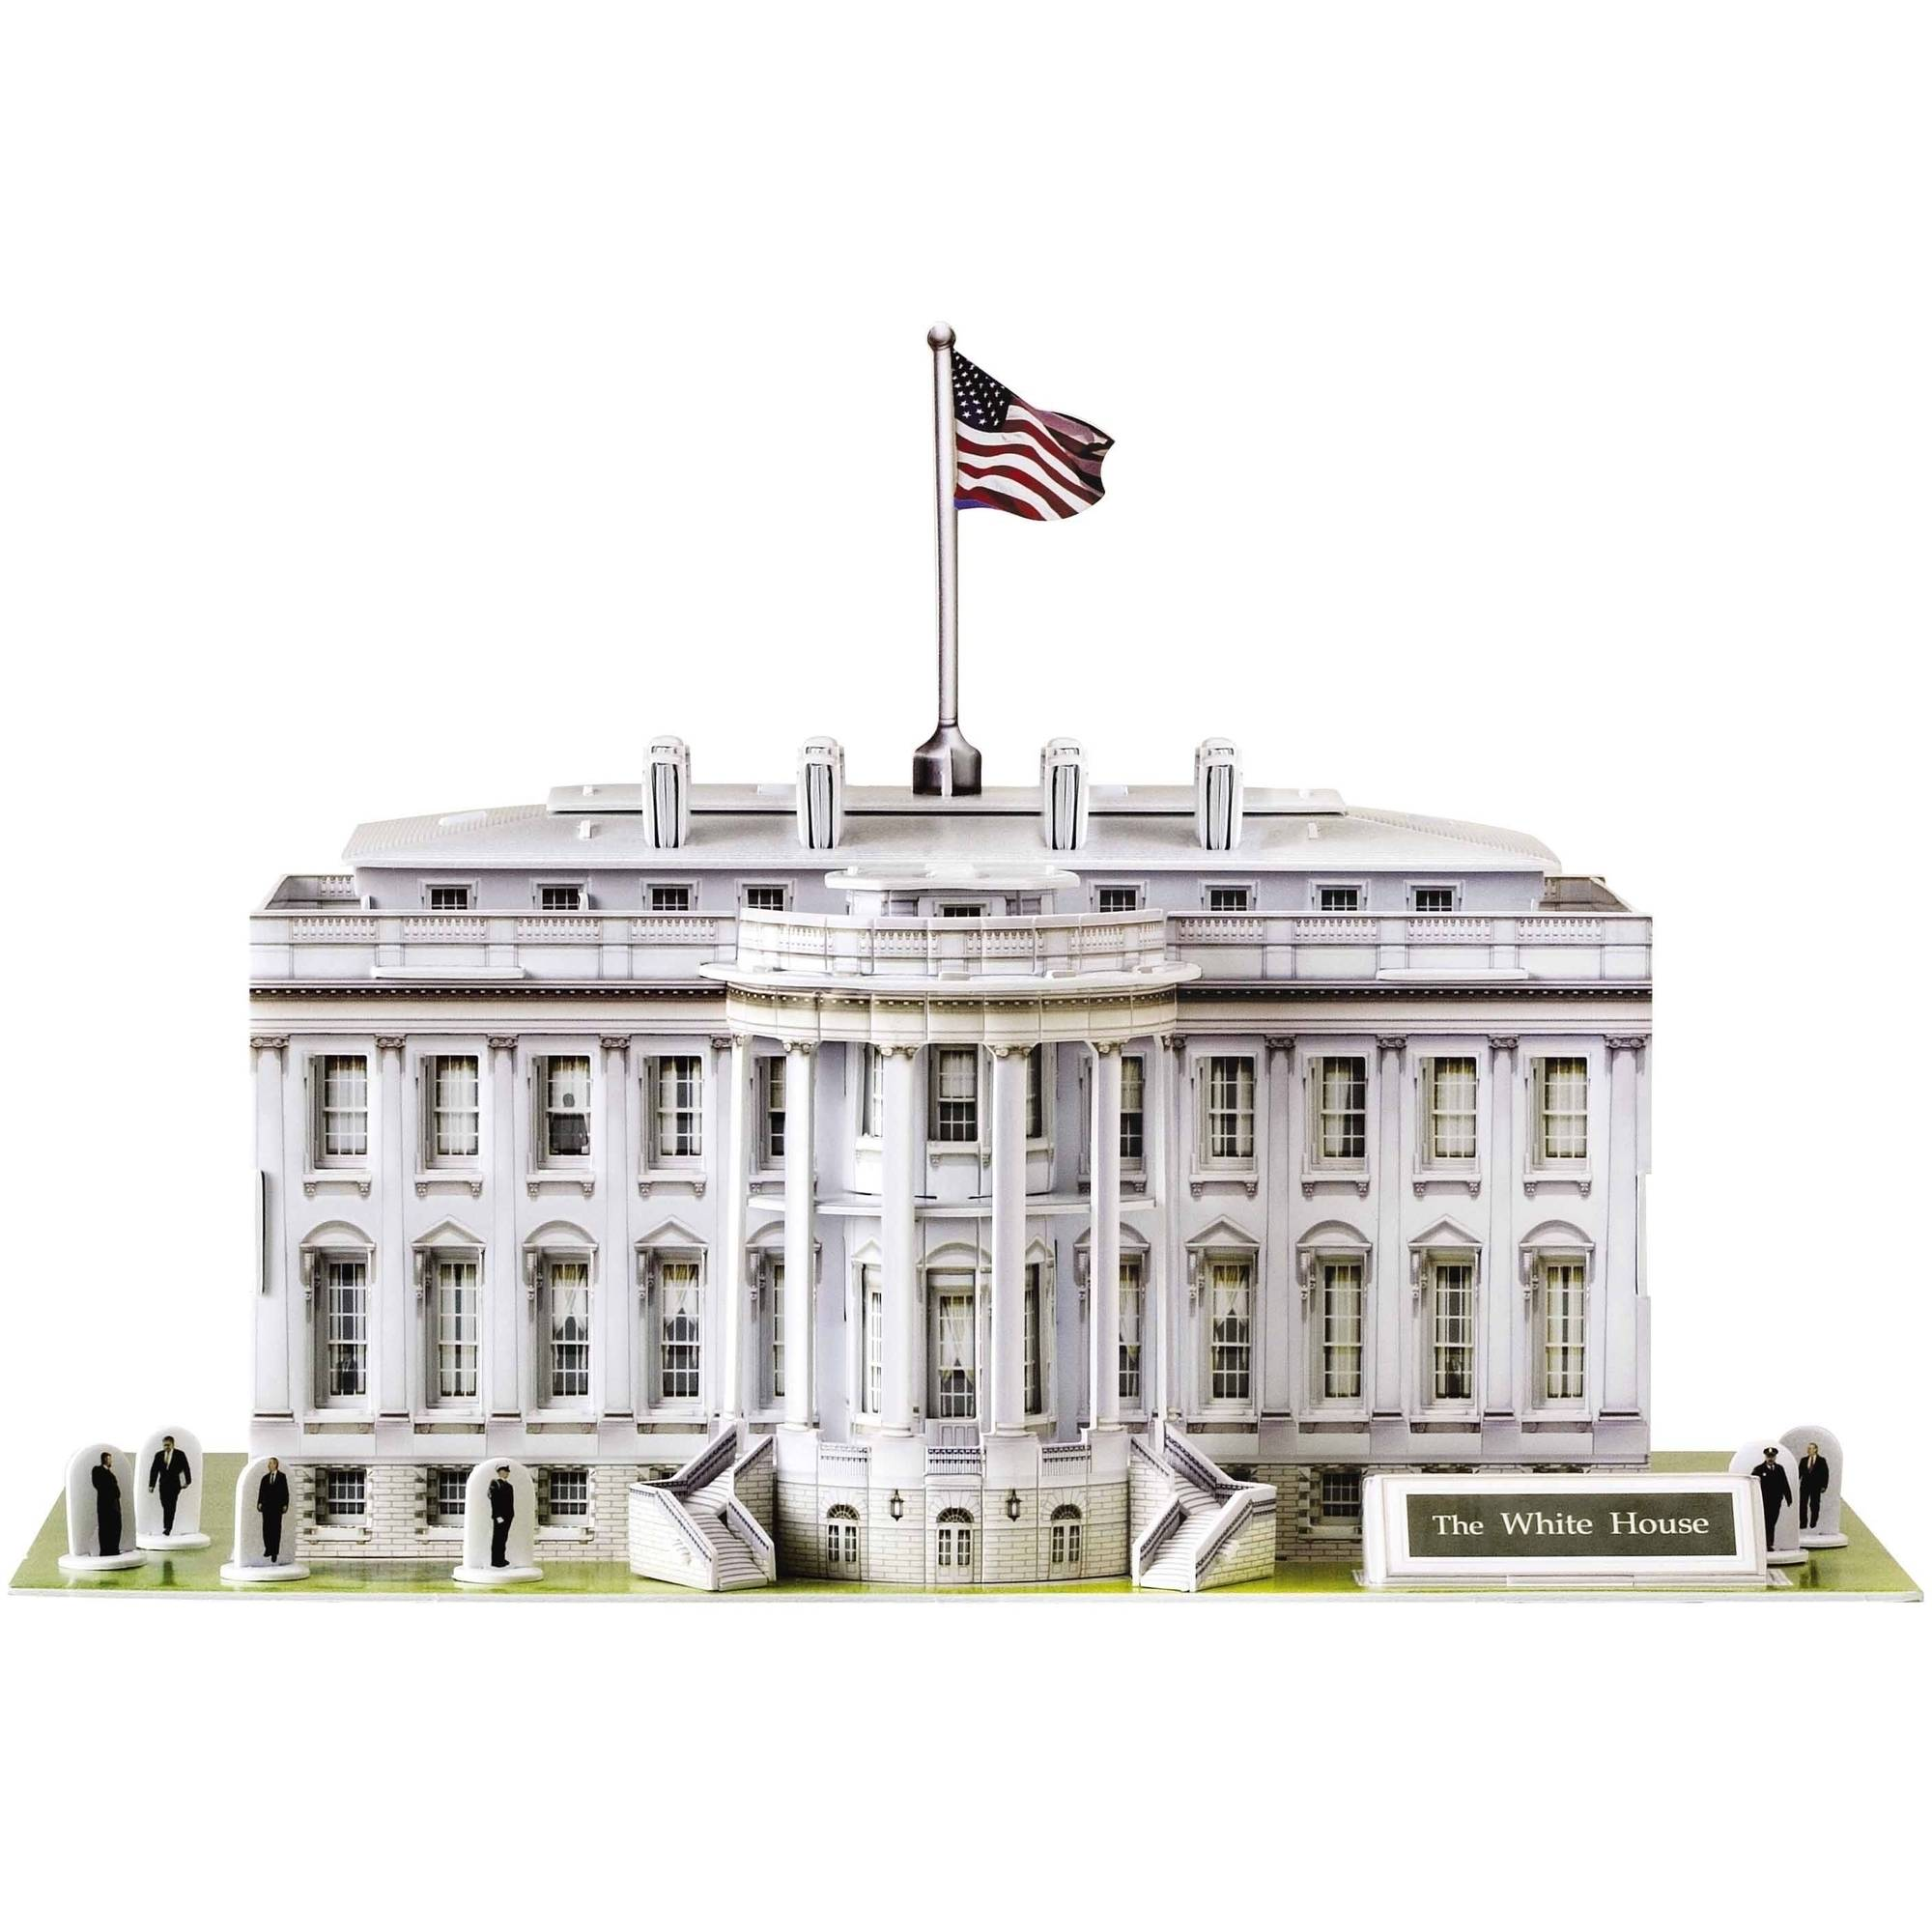 The White House 3D Puzzle, 80 Pieces